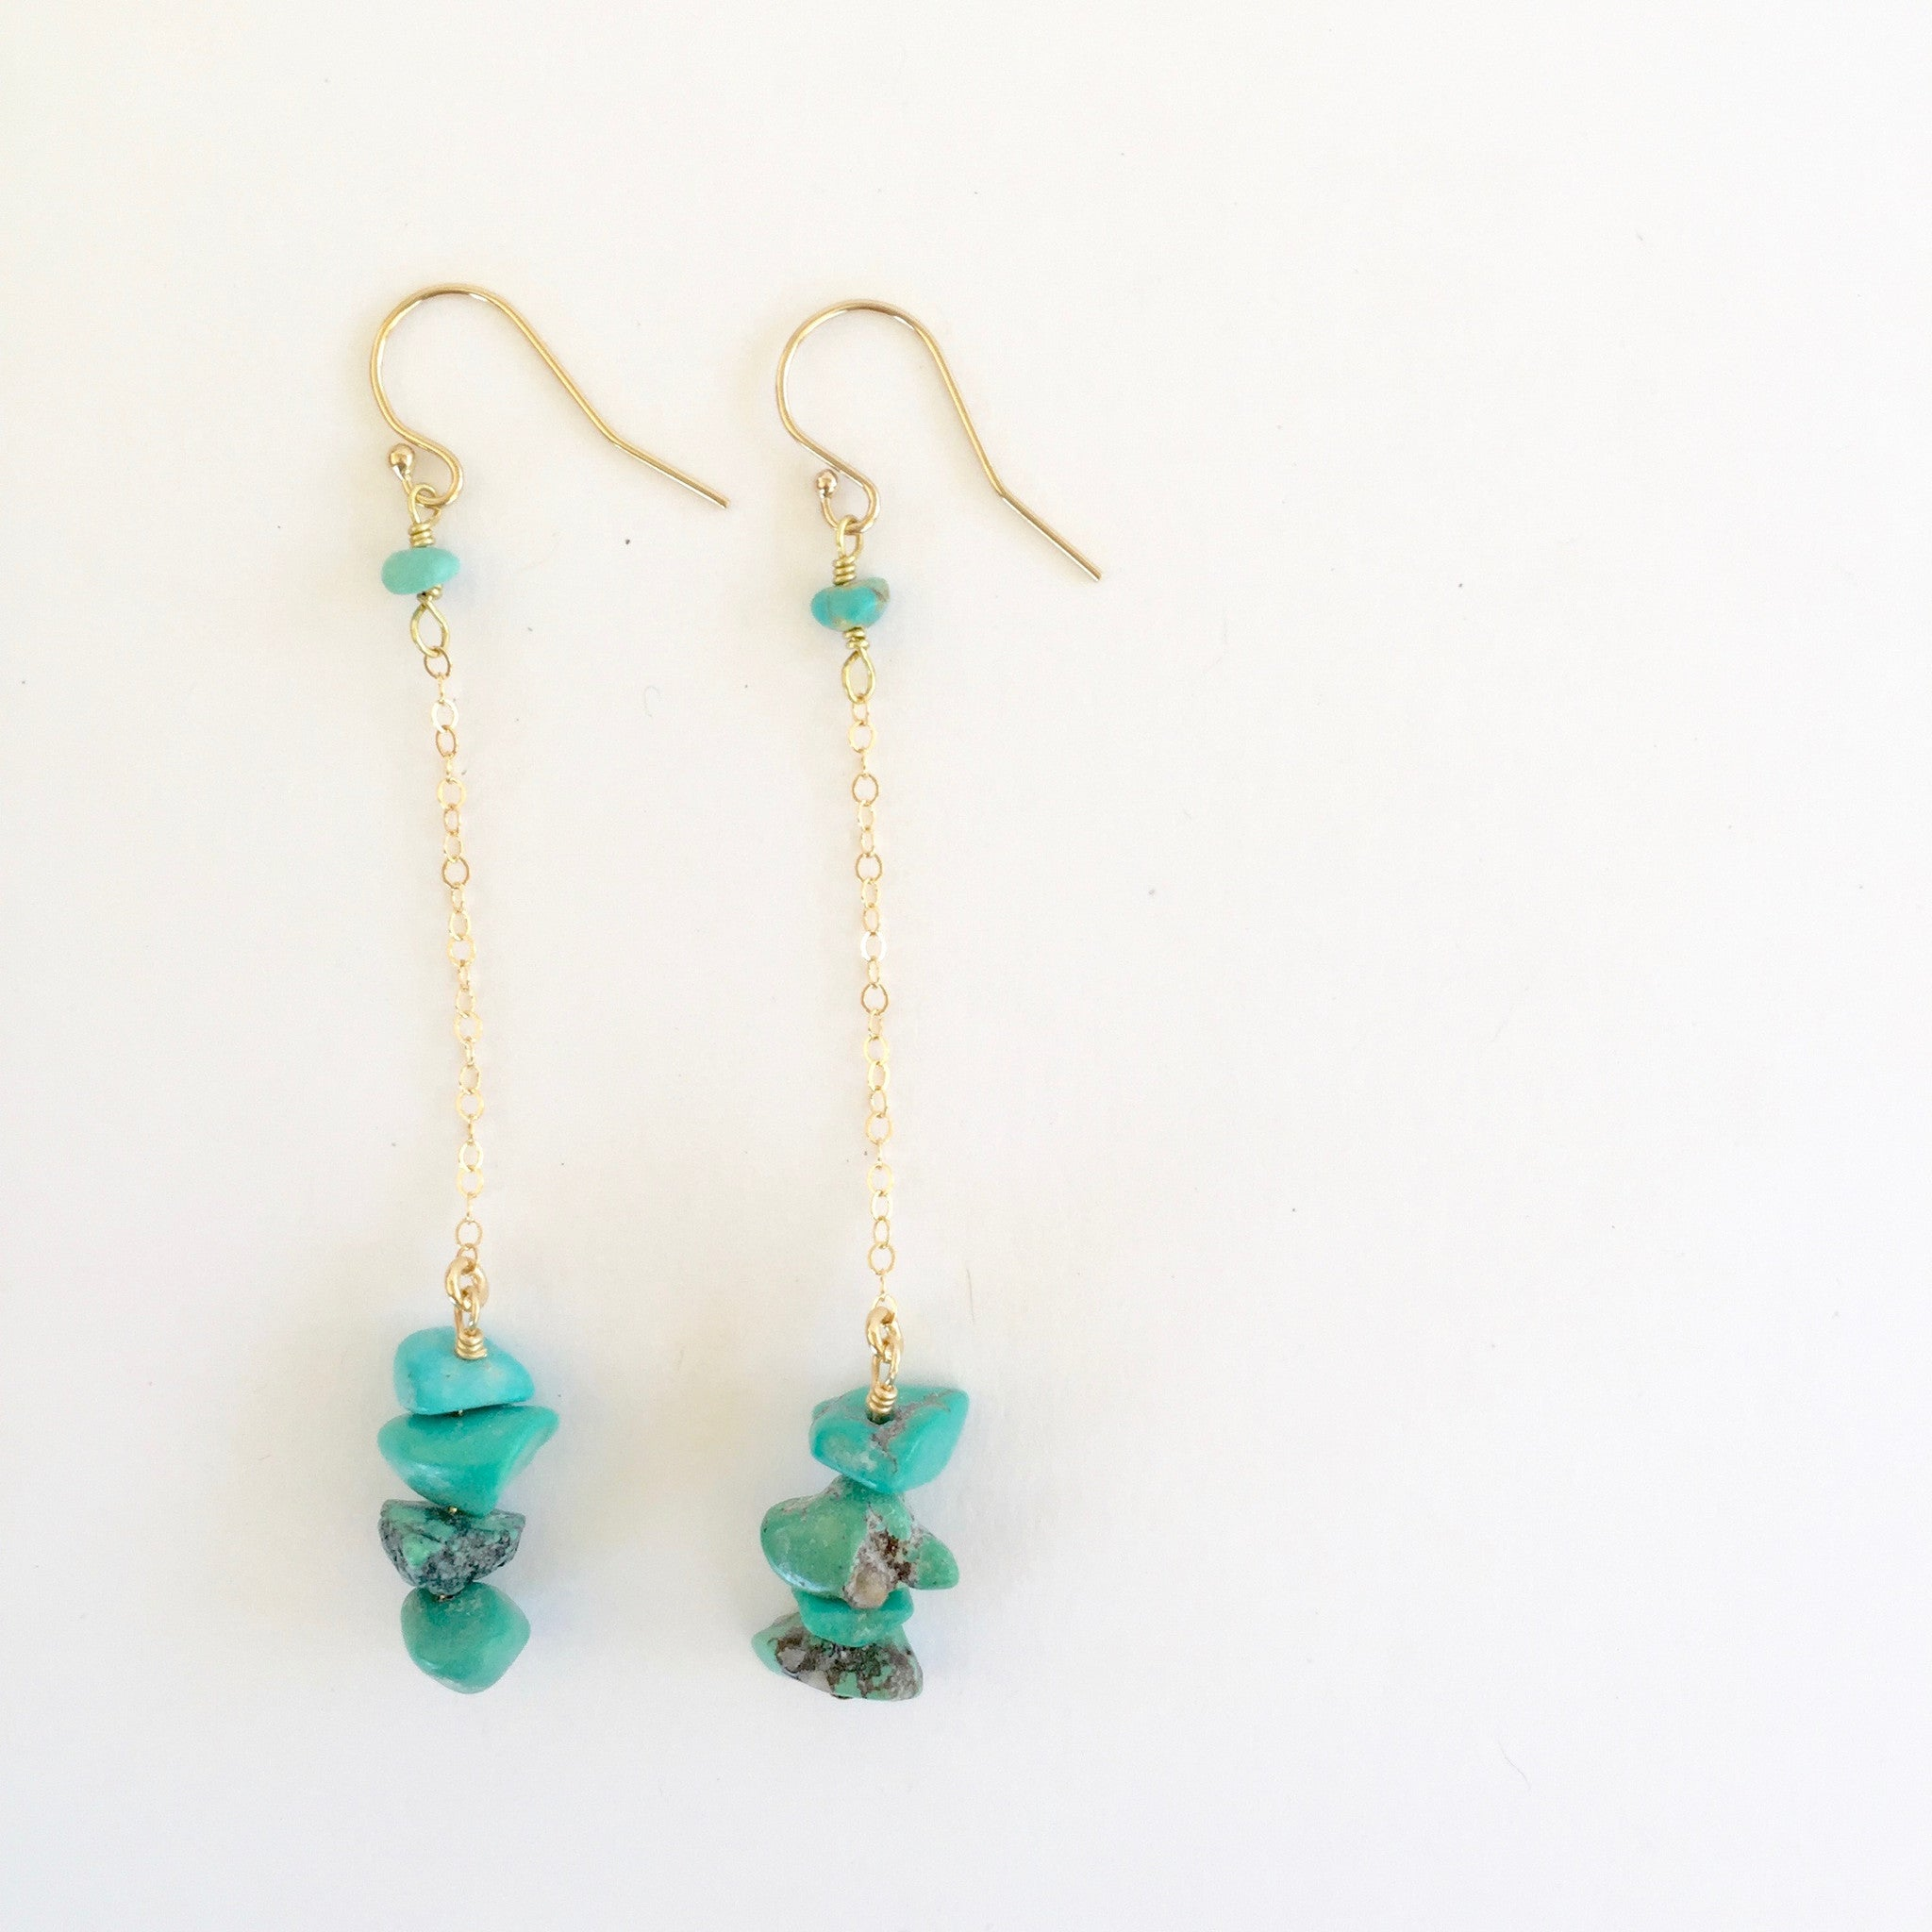 Shelly Earrings in Turquoise